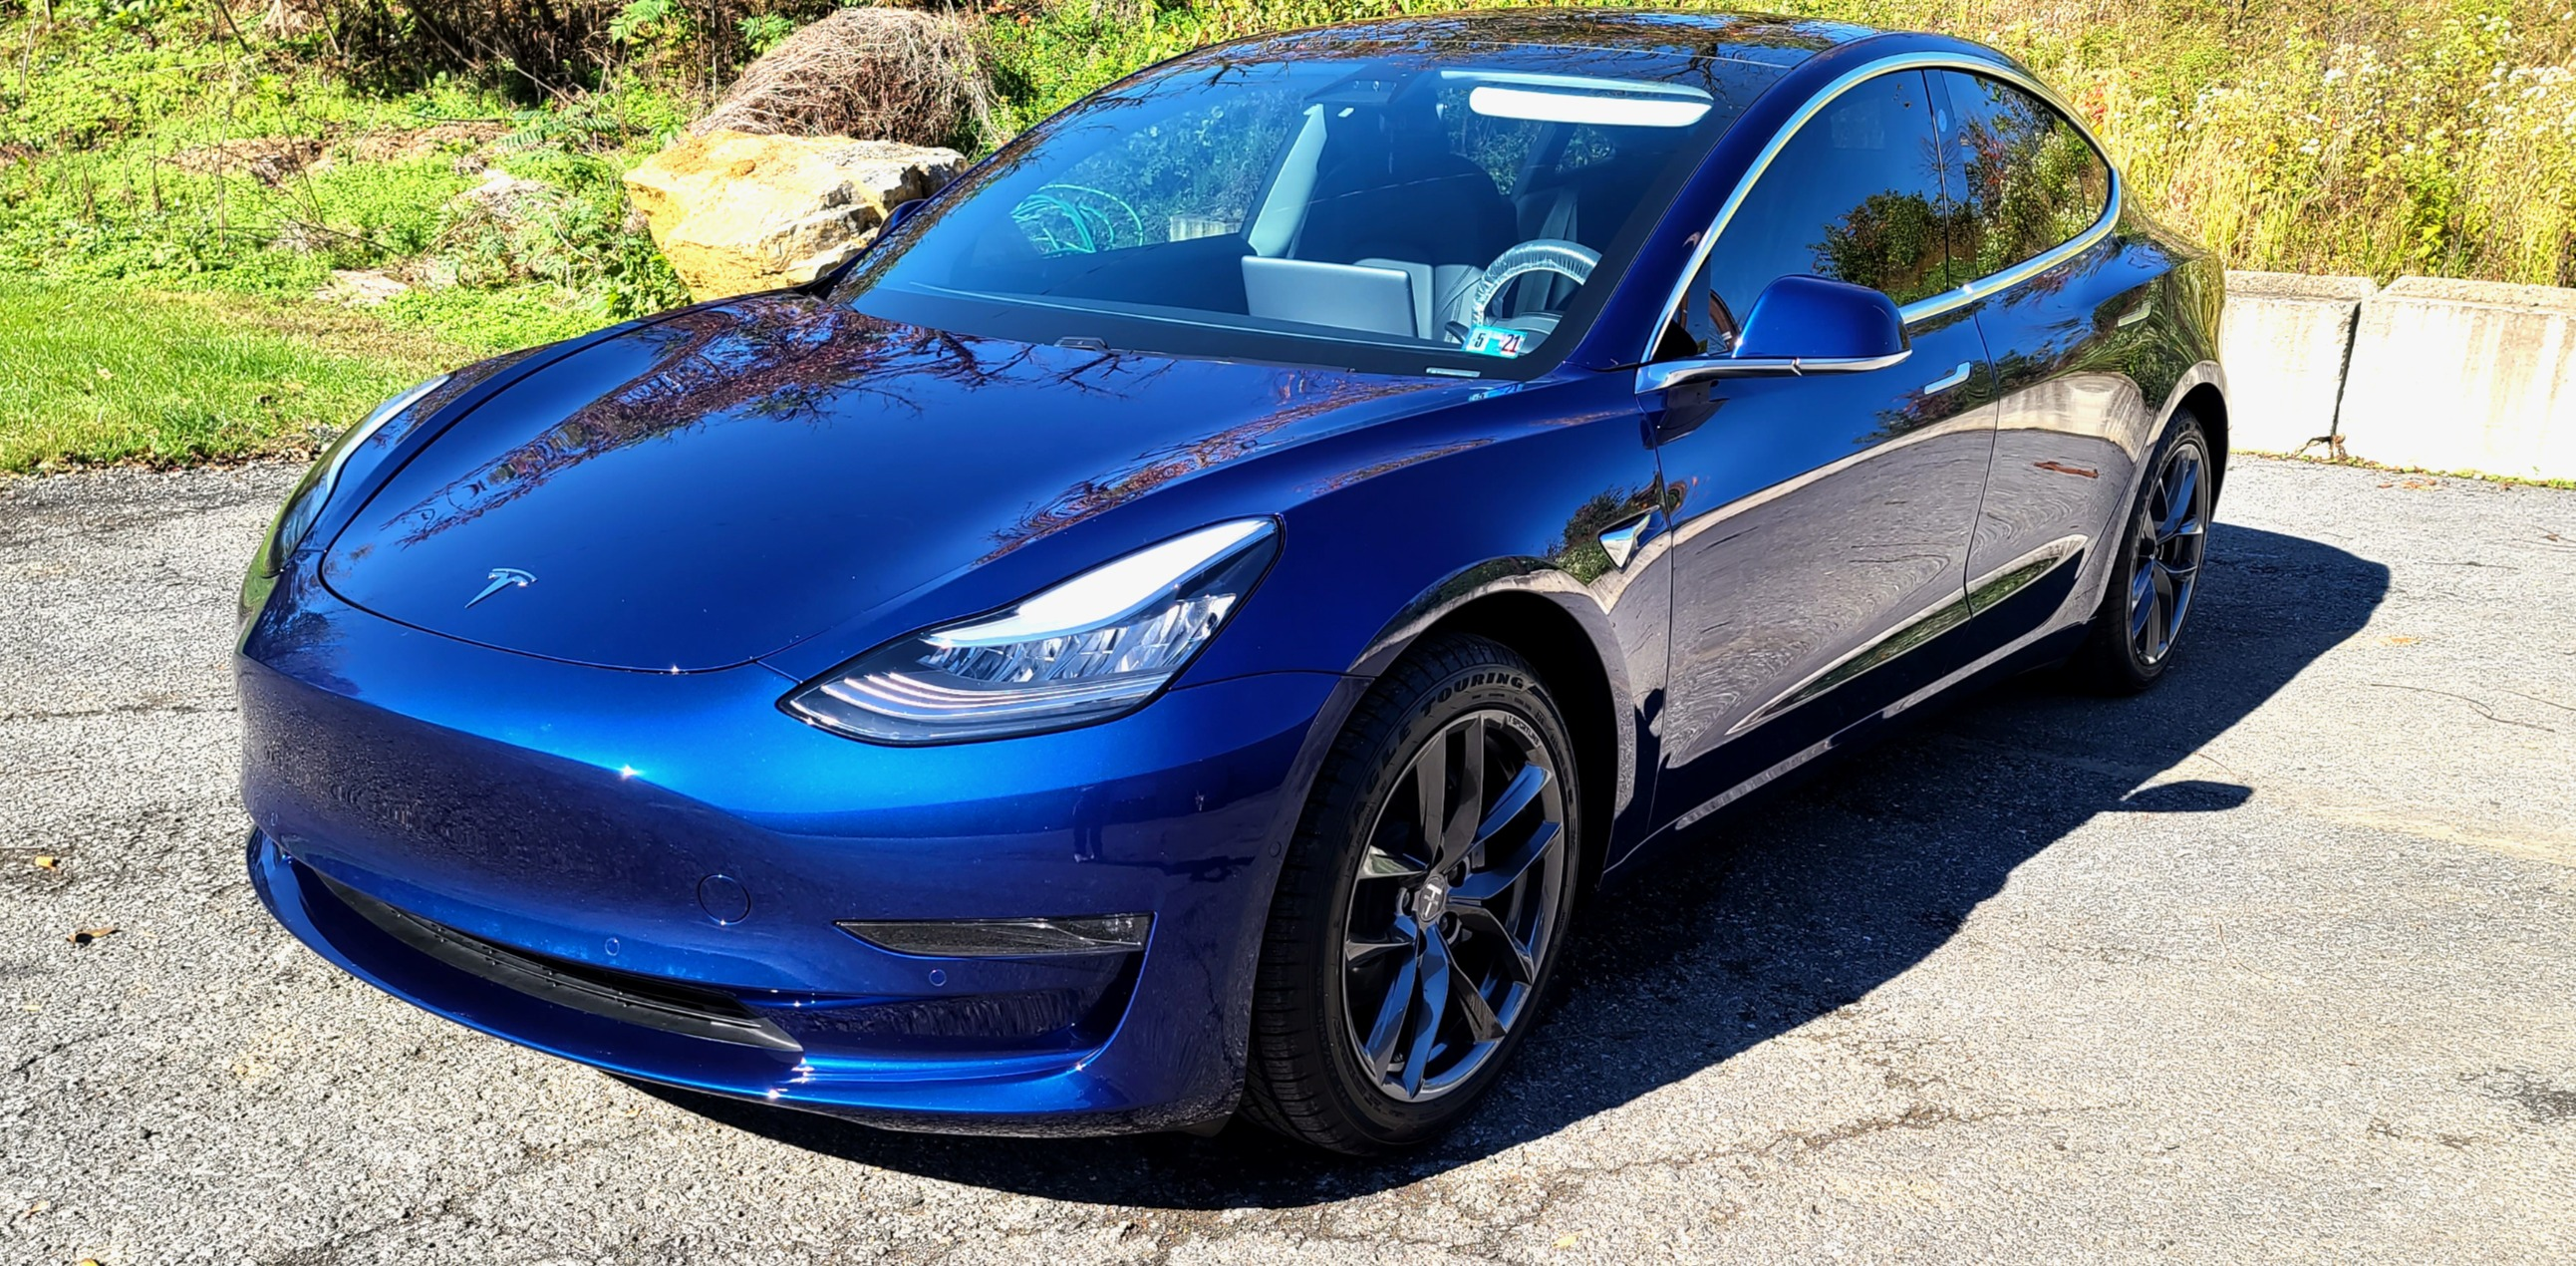 Tesla Model 3 Full Body Paint Protection Film